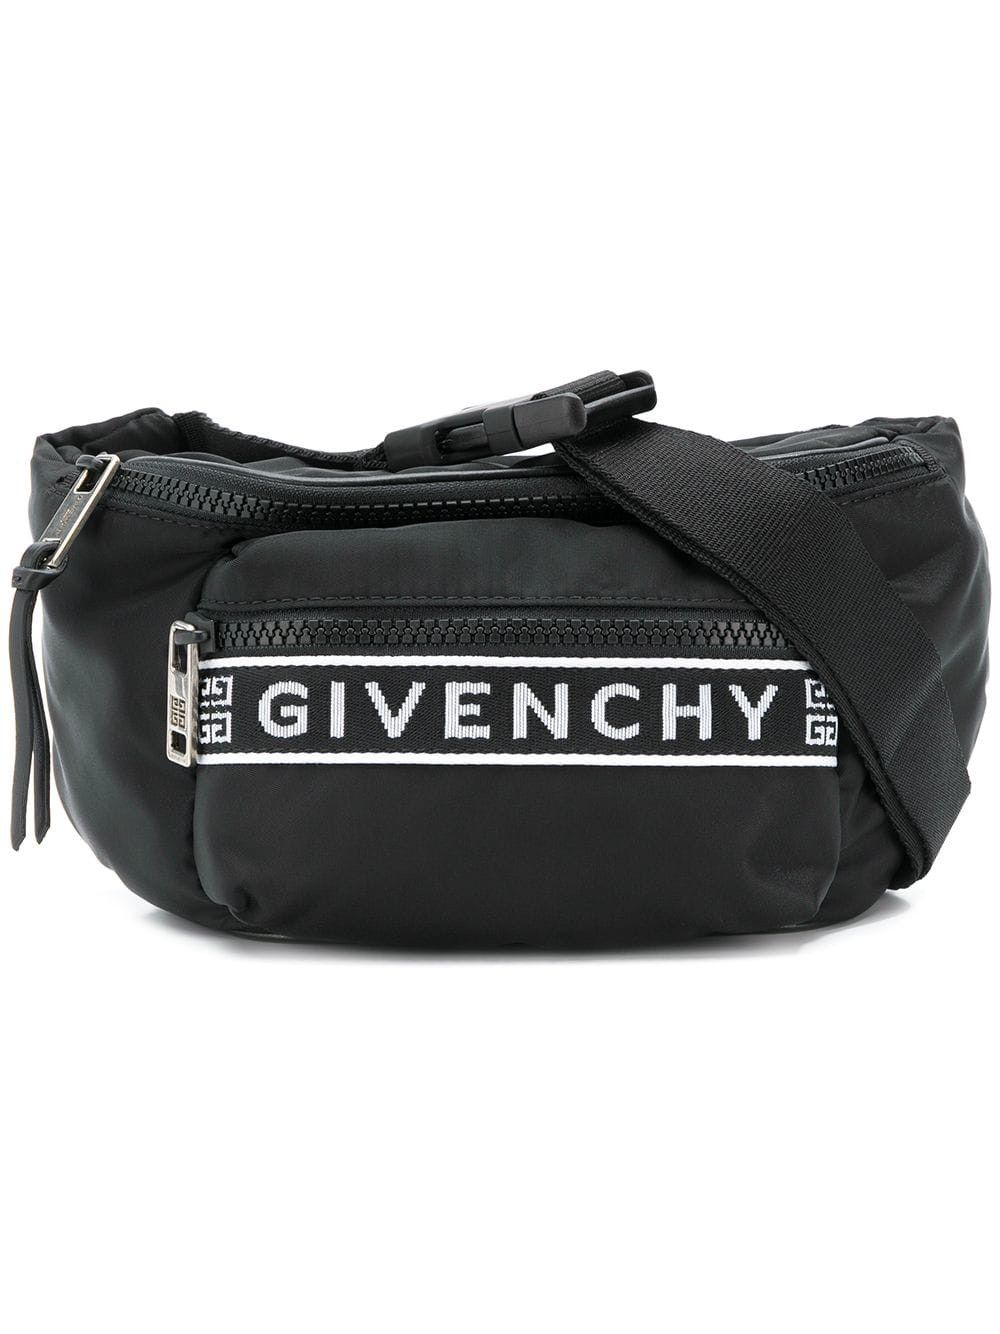 a4249027182 GIVENCHY logo belt bag. #givenchy #bags #belt bags # | Givenchy ...